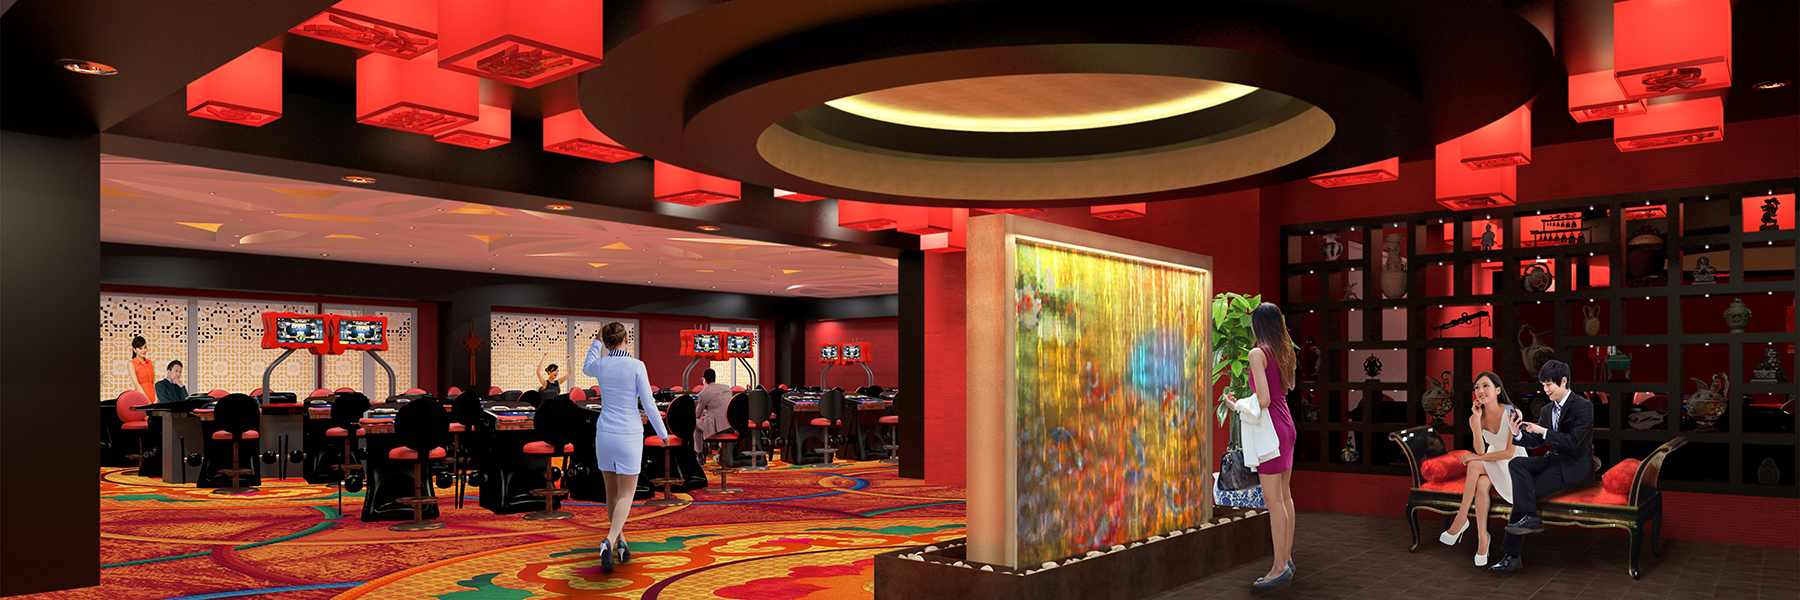 Resort's World Casino - Baccarat Club